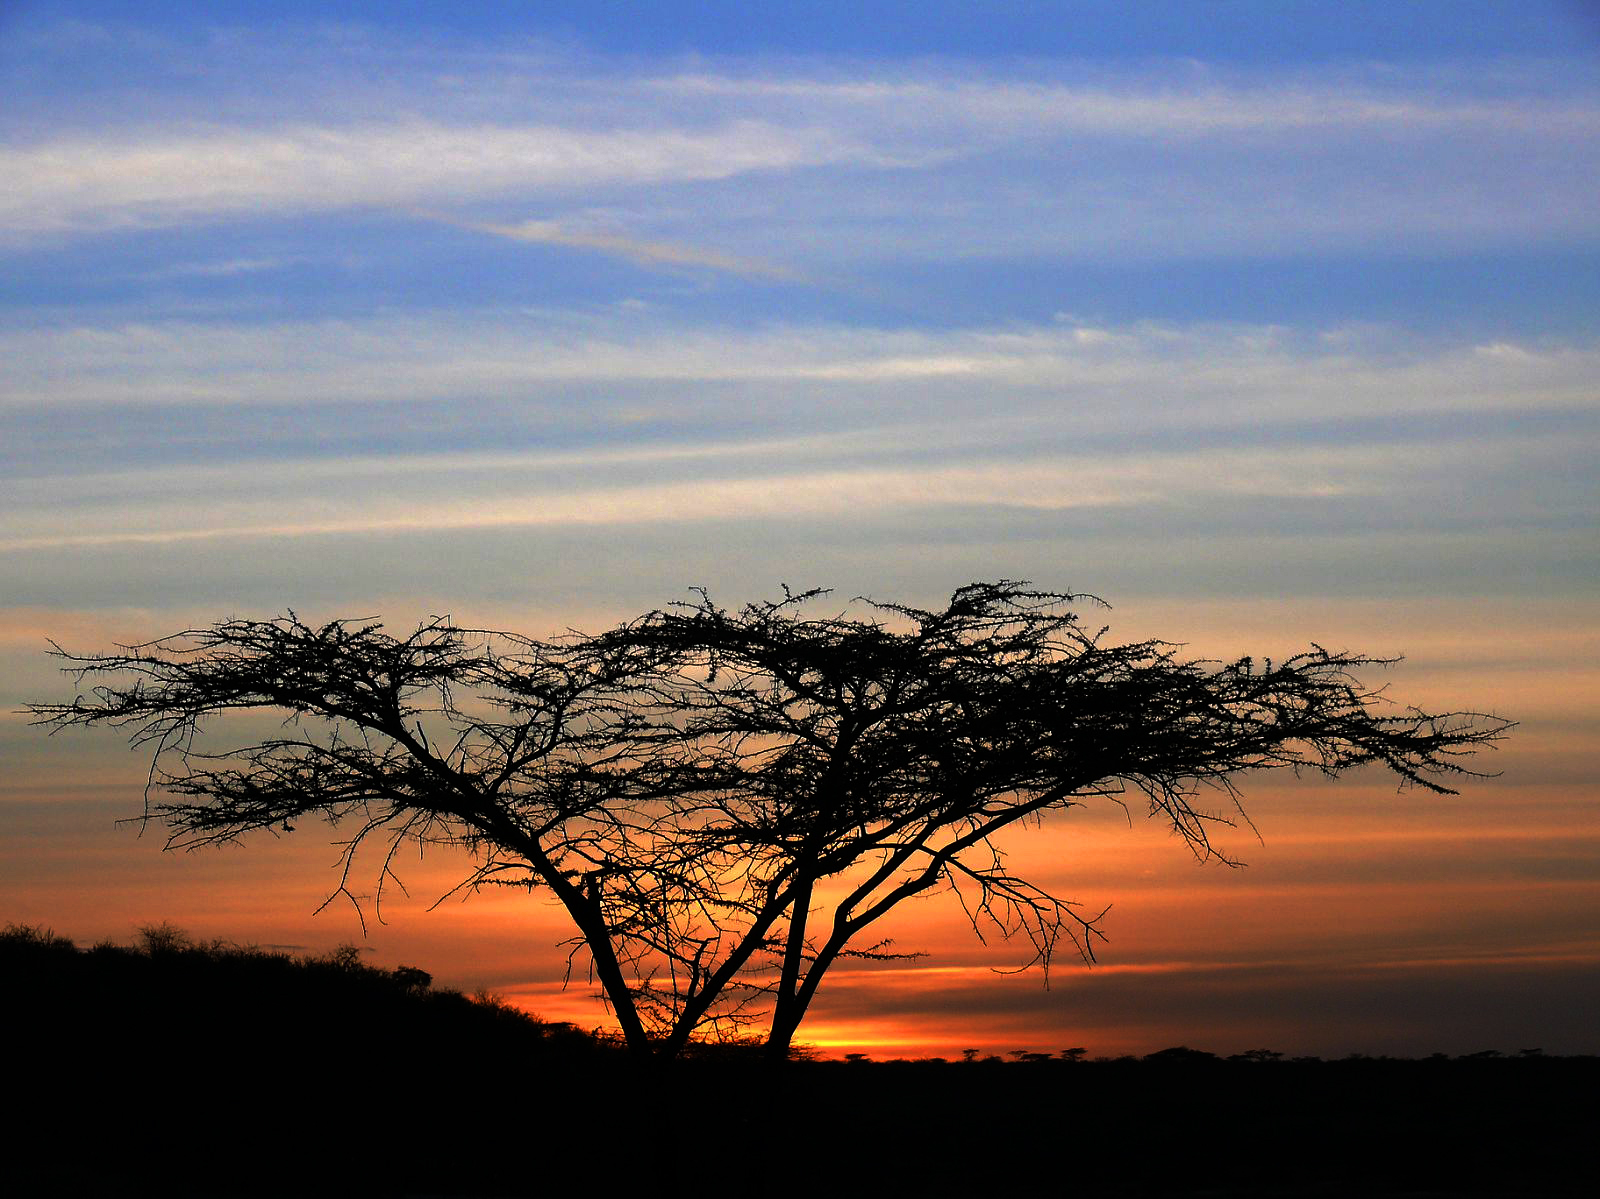 Tree at sunset2.jpg